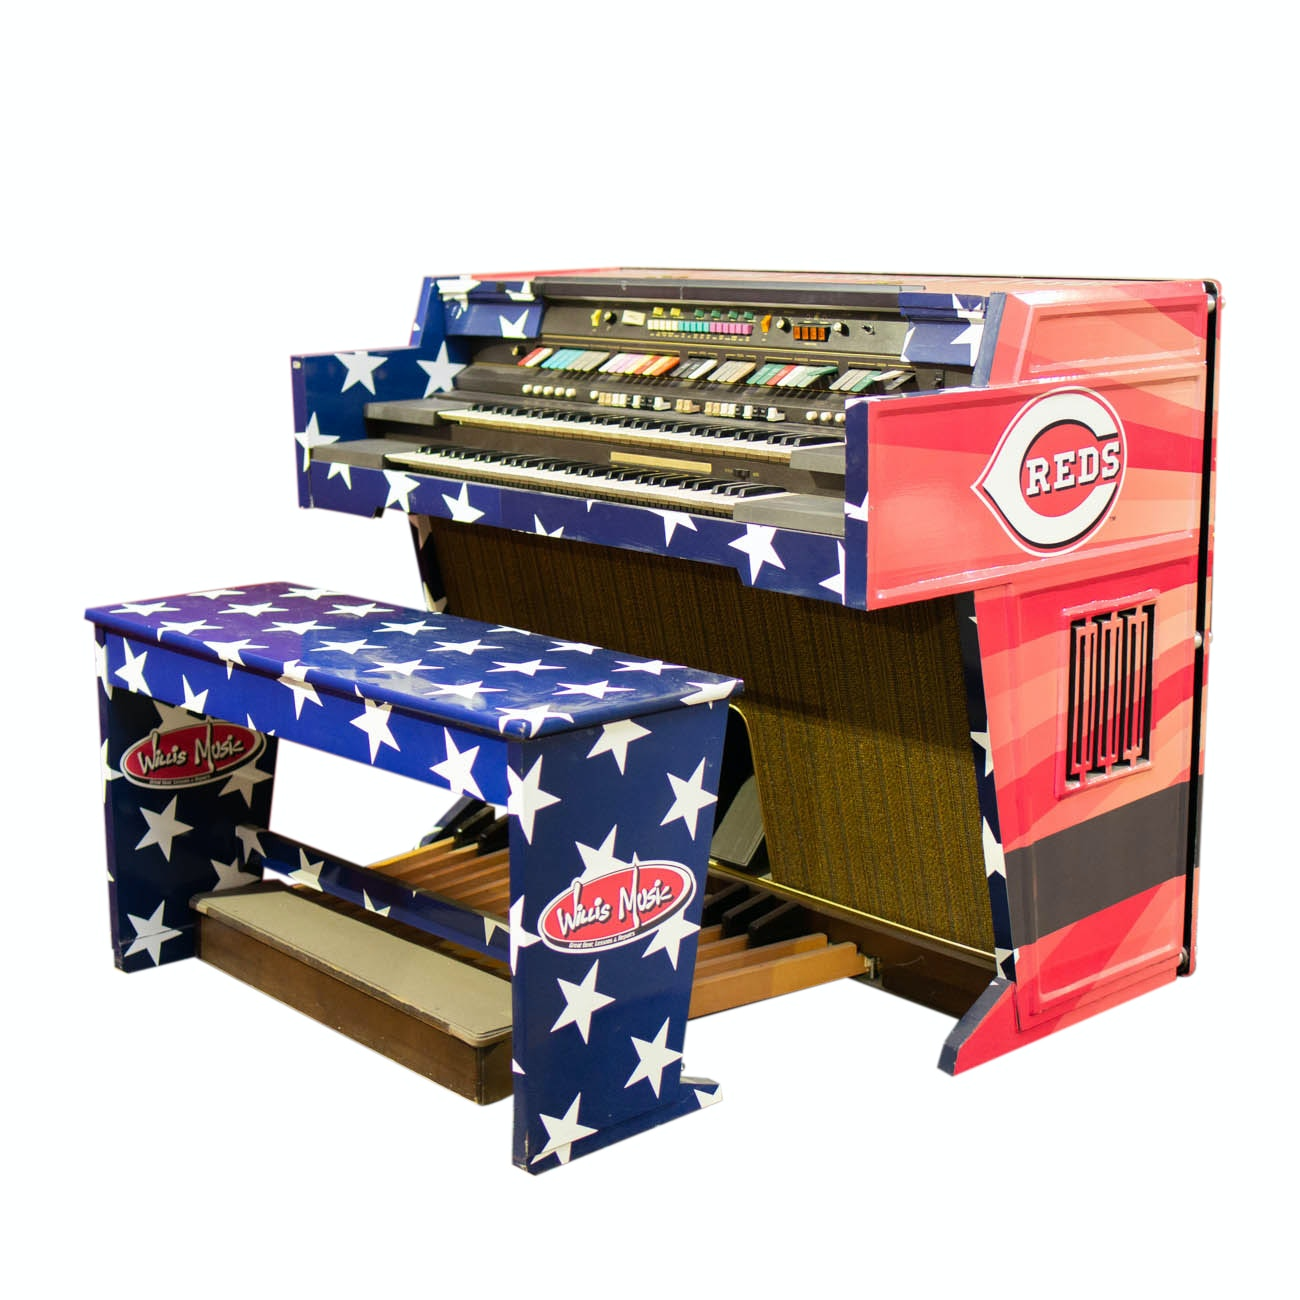 Willis Music Organ with Bench From Great American Ball Park COA